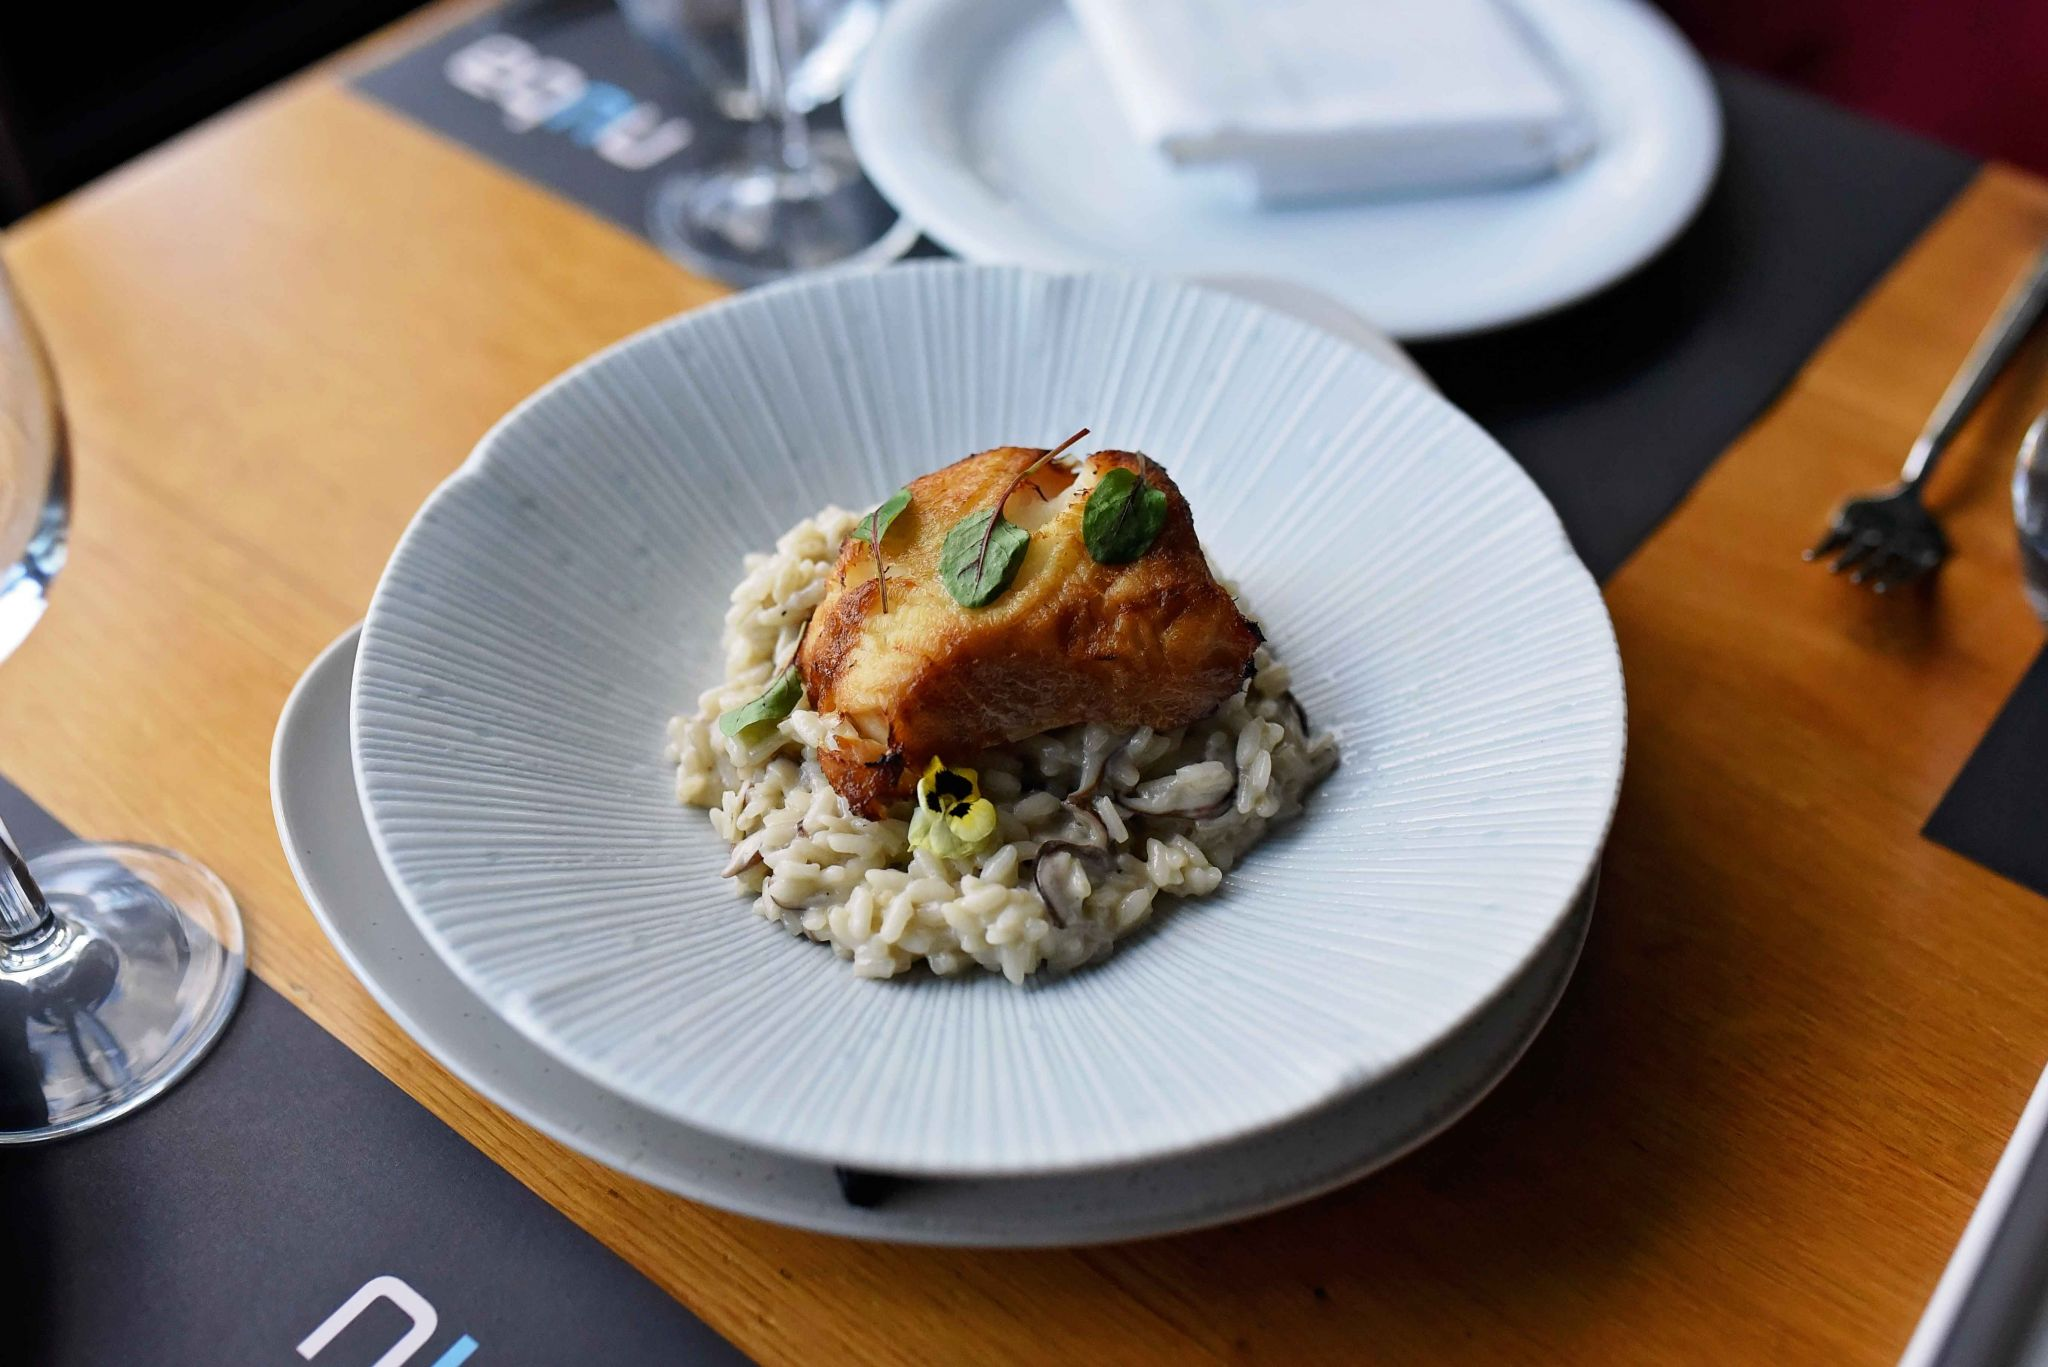 CHILEAN SEA BASS WITH RISOTTO